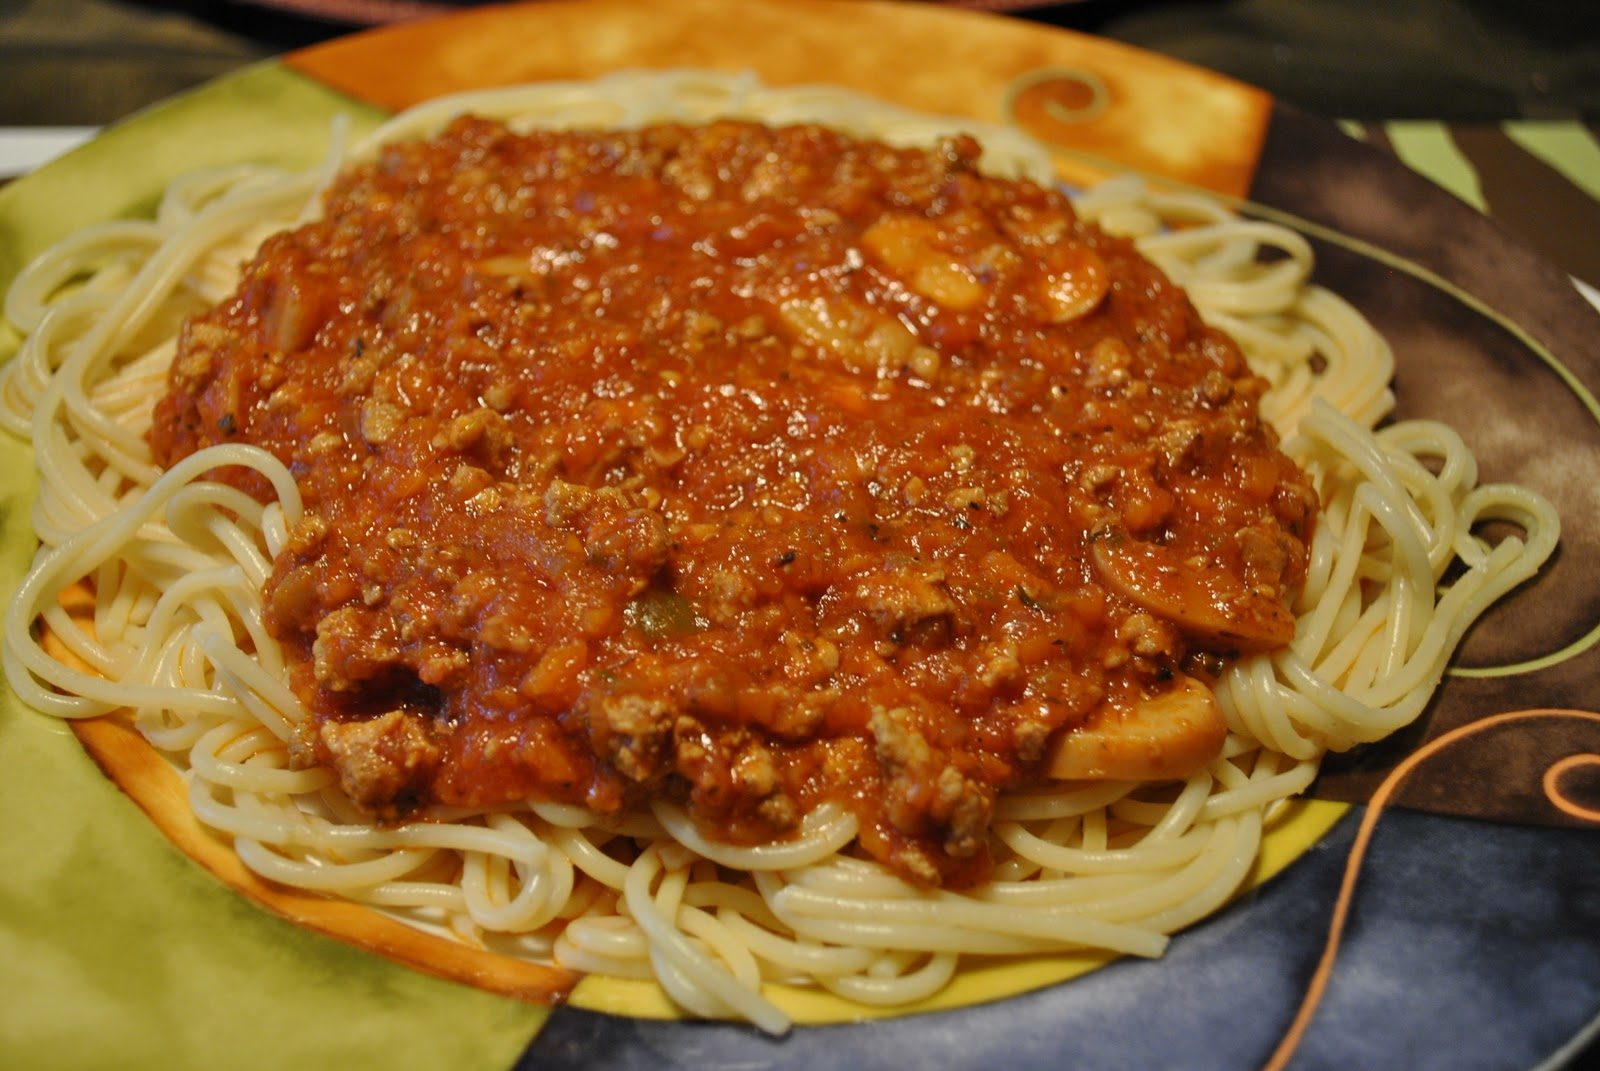 Spaghetti maurice recette for Marinade poulet huile d olive